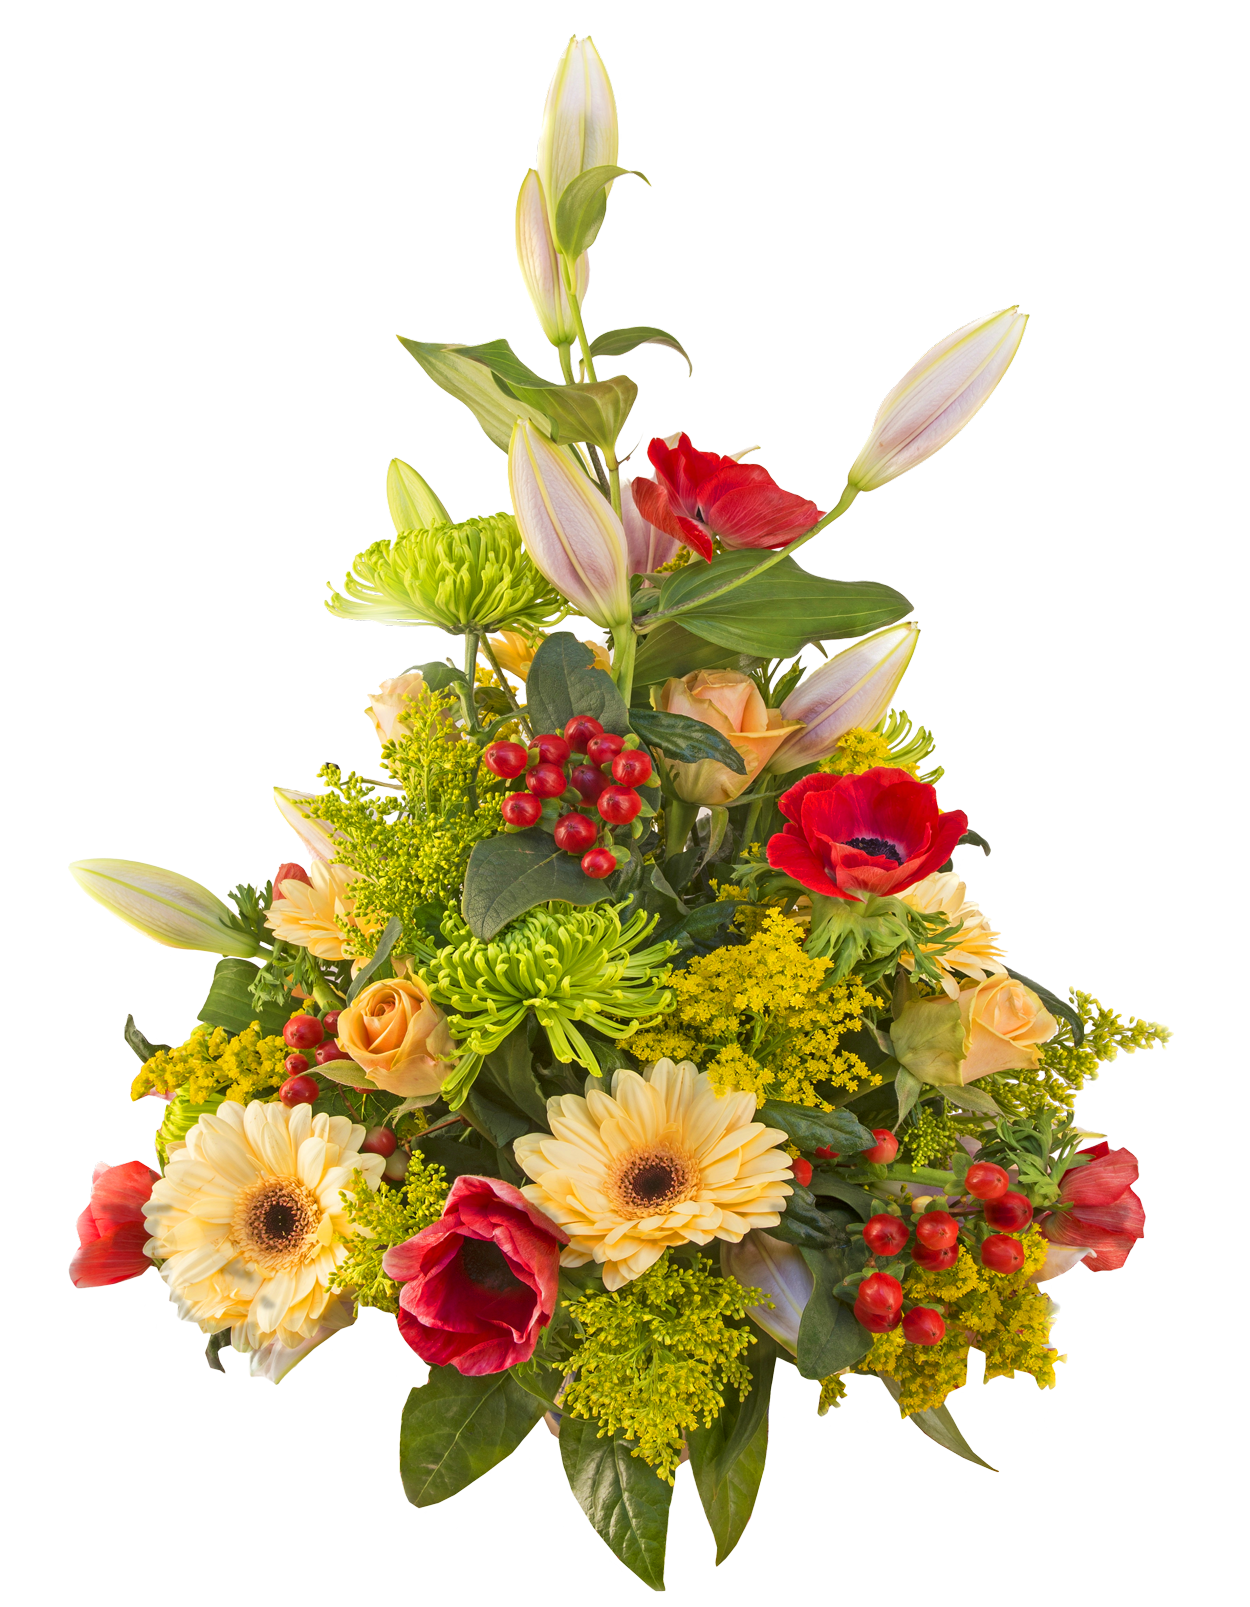 Flower bunch png. Bouquet of flowers images